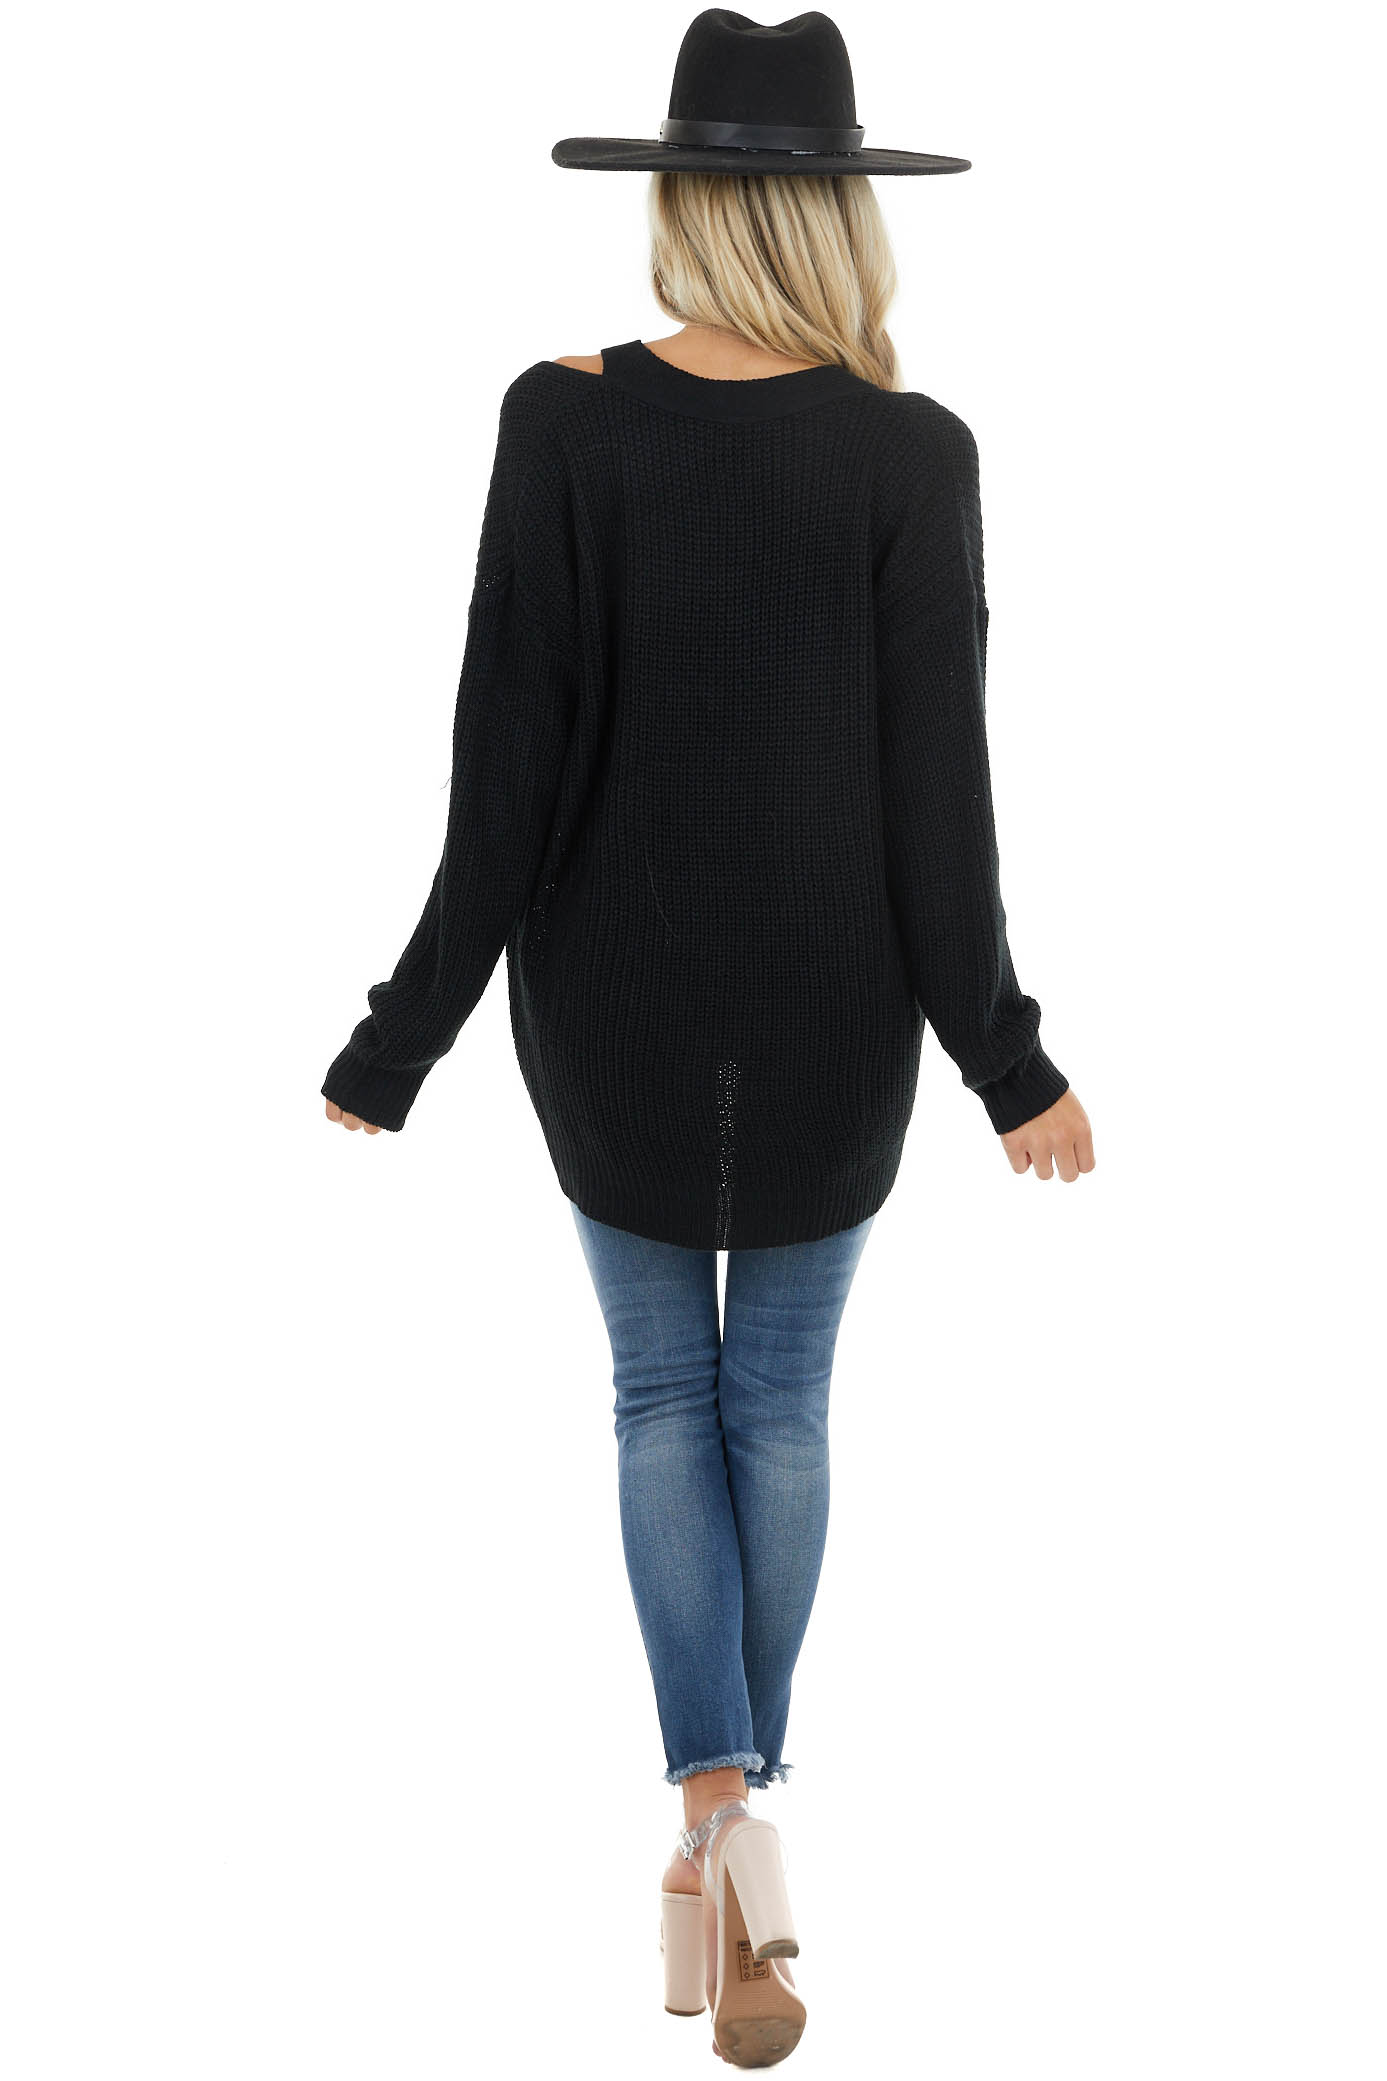 Black Knit Long Sleeve Sweater with Cutout V Neck Detail